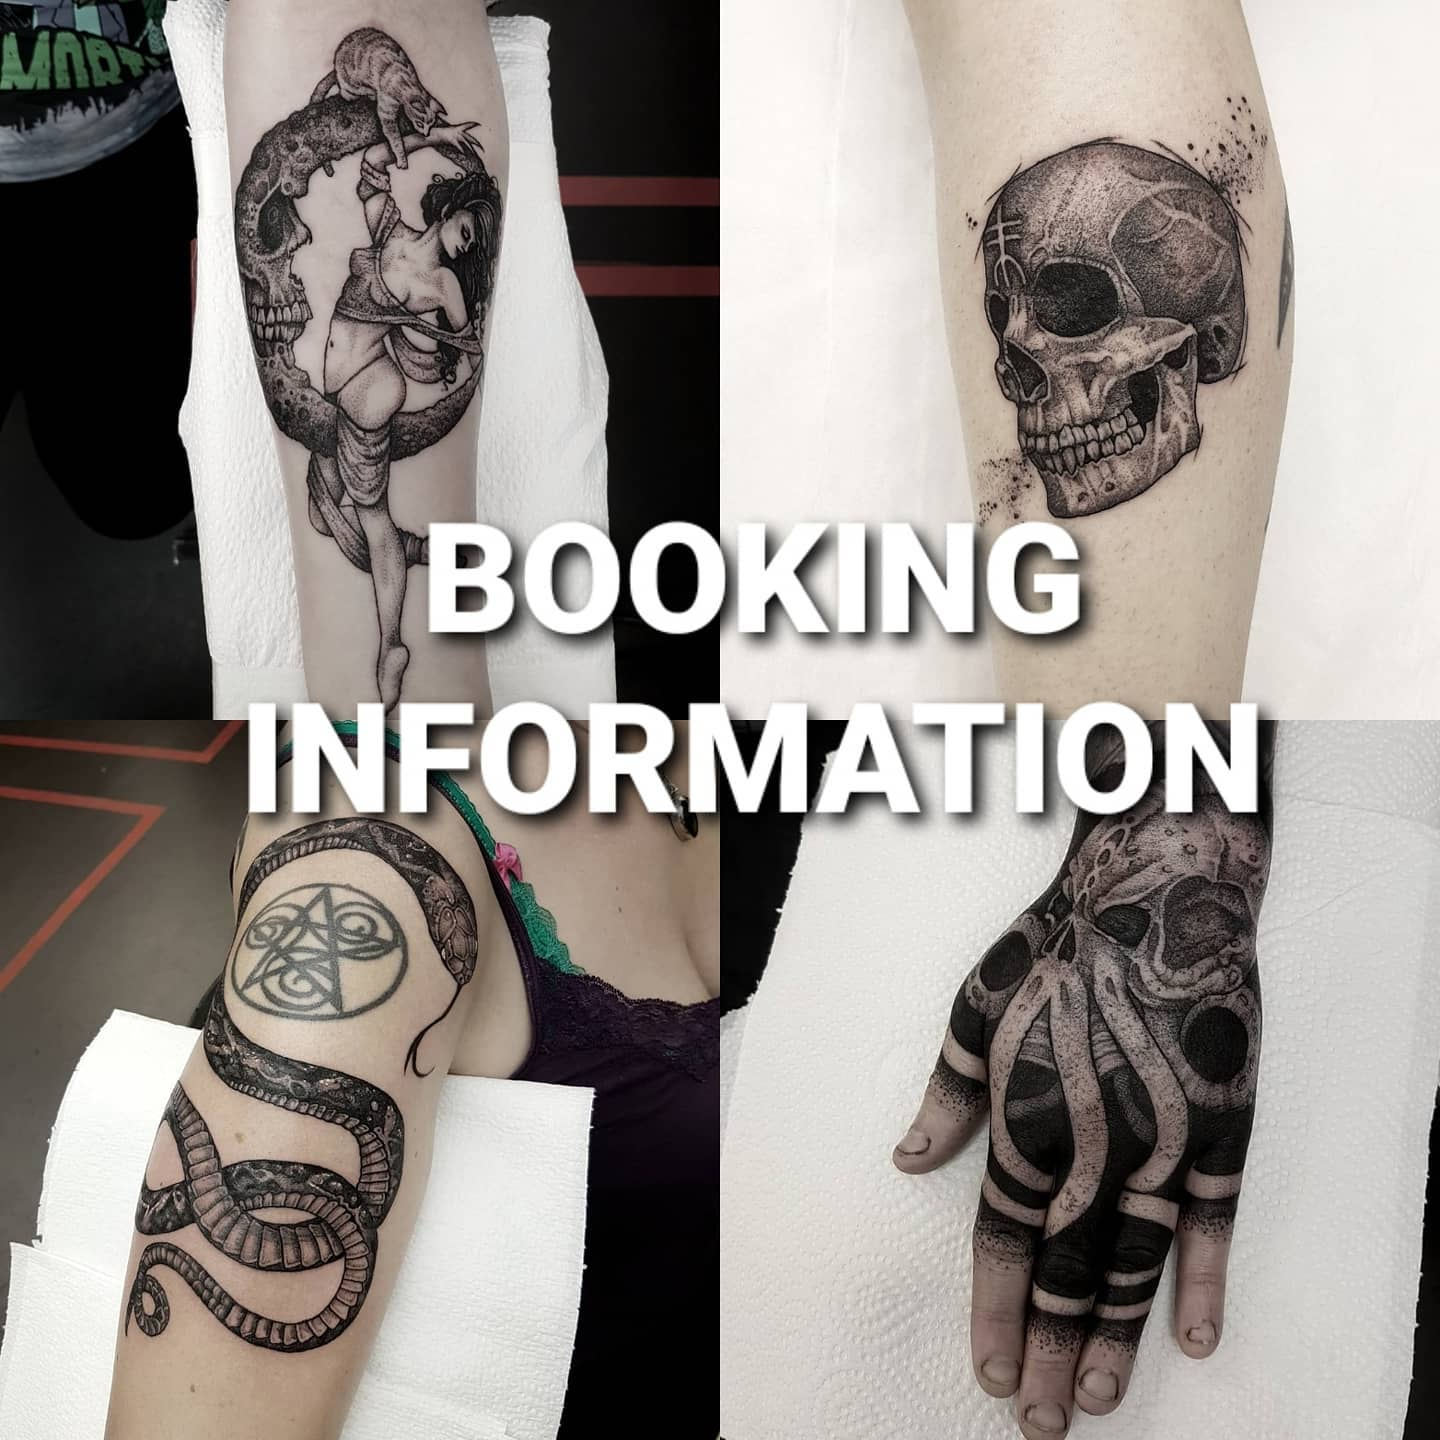 ***New bookings info*** first of all, thanks to everyone who has been in touch the last few months 🖤 I'm starting email consultations from tomorrow for new appointments, and the studio will start booking these in from April 26th! If you want to book in, email me at goatskullshirleygmail.com with the following info: design idea, with reference pics if you have any (max of four), placement and size(width and height in cm), a photo of the placement with a pen line outlining where you want the tattoo (as close to accurate in size as possible is super handy!). I'll get a timescale and quote figured out with you, and from the 26th, Studio XIII will get you all booked in! Dying to be back in the studio and getting back to work! 🖤💪🖤 . . . . . . . .                       thedarkestwork darkartists artesobscurae uktta wiccac stabmegod onlythedarkest blacktattooing